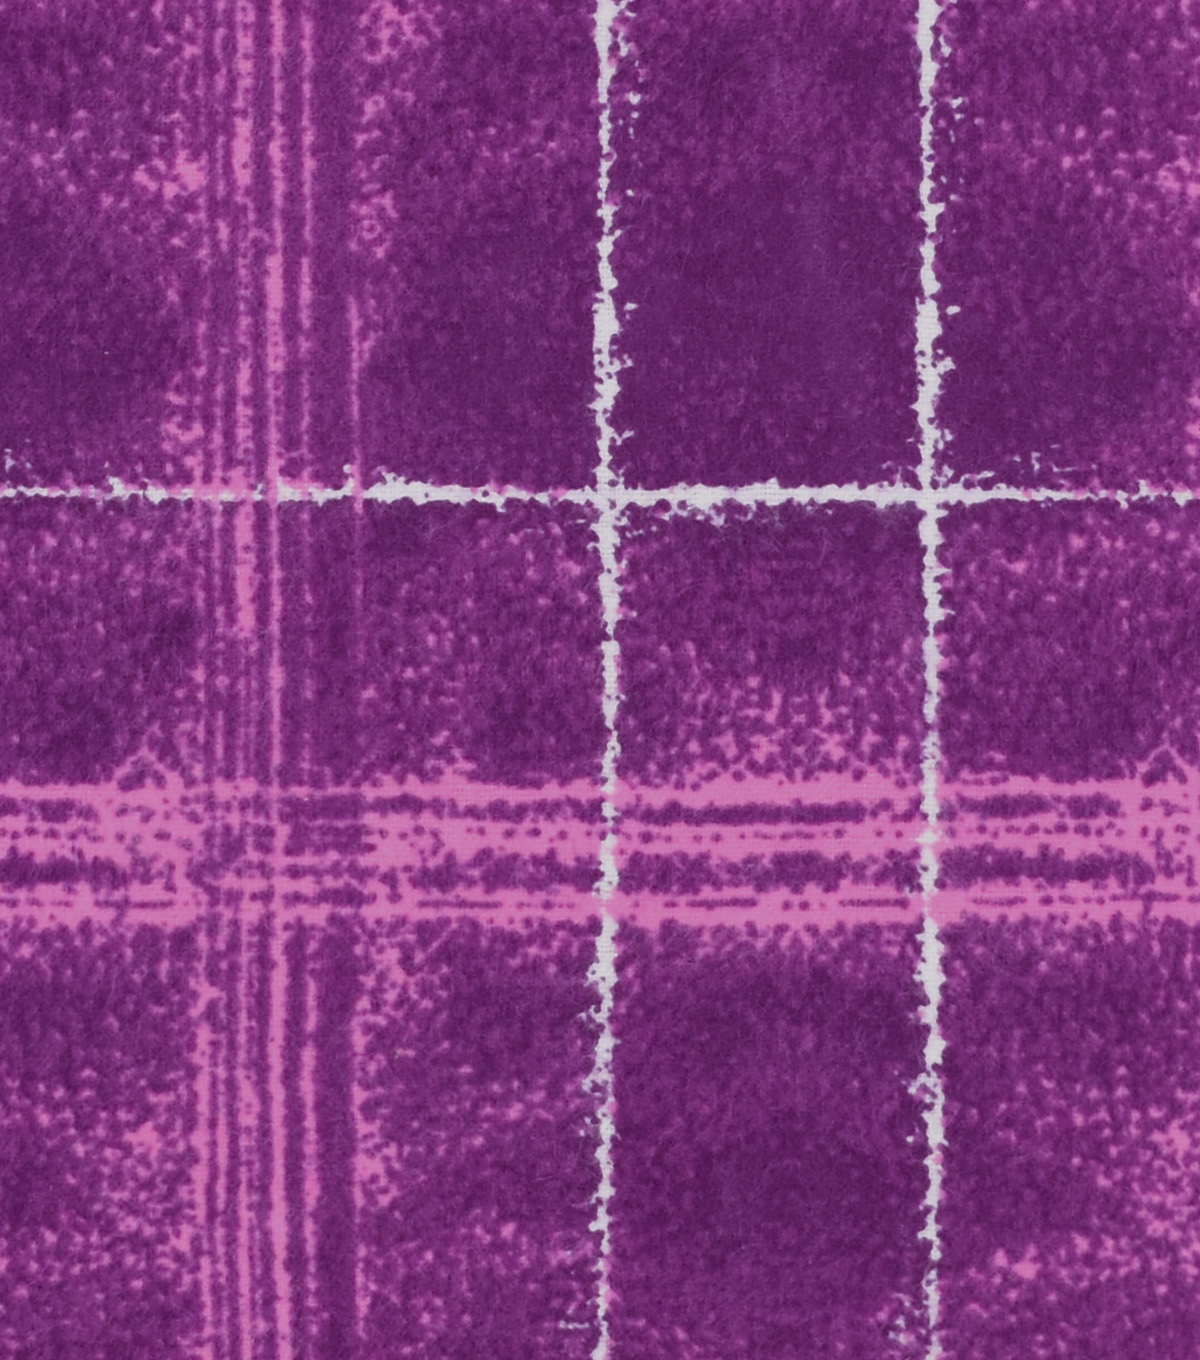 Snuggle Flannel Fabric -Jade Pink Plaid